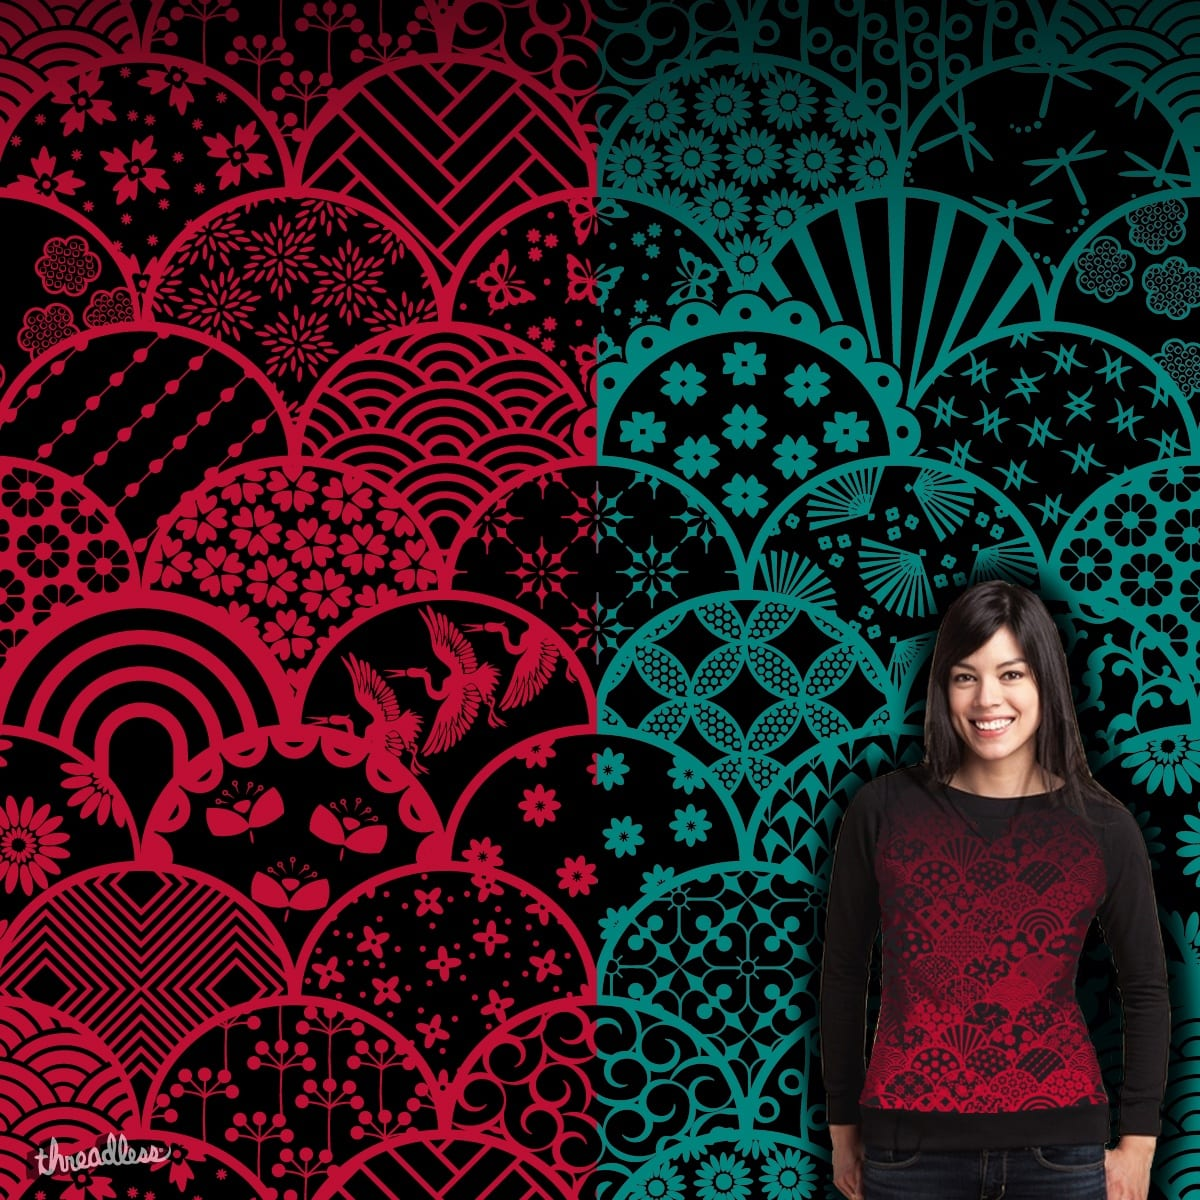 Spring Scales by swissette on Threadless